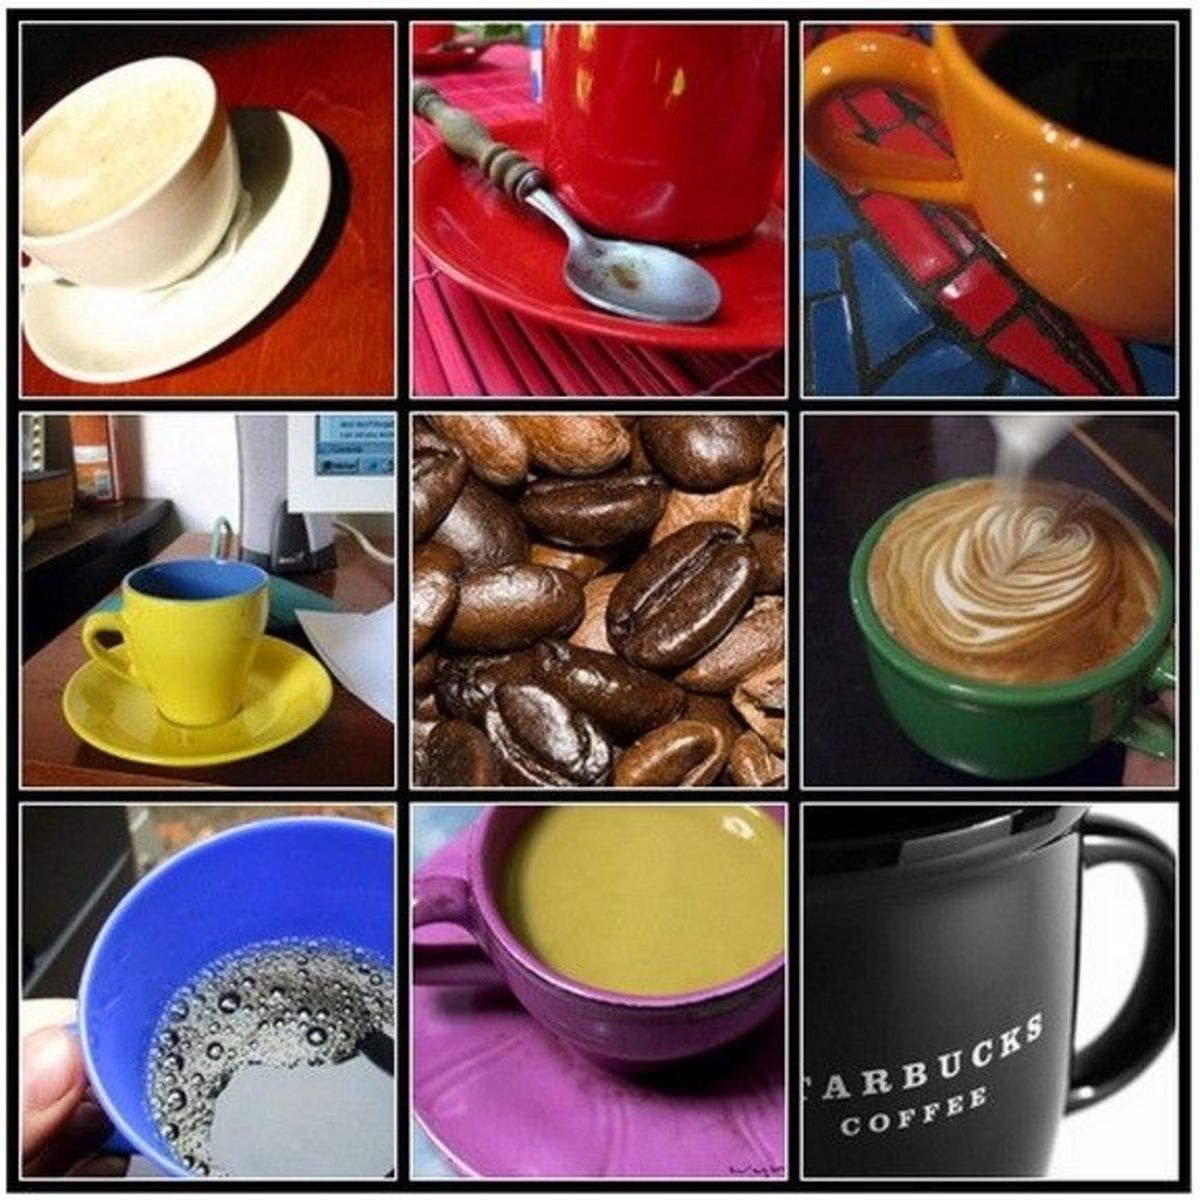 Who Collects Coffee Mugs?